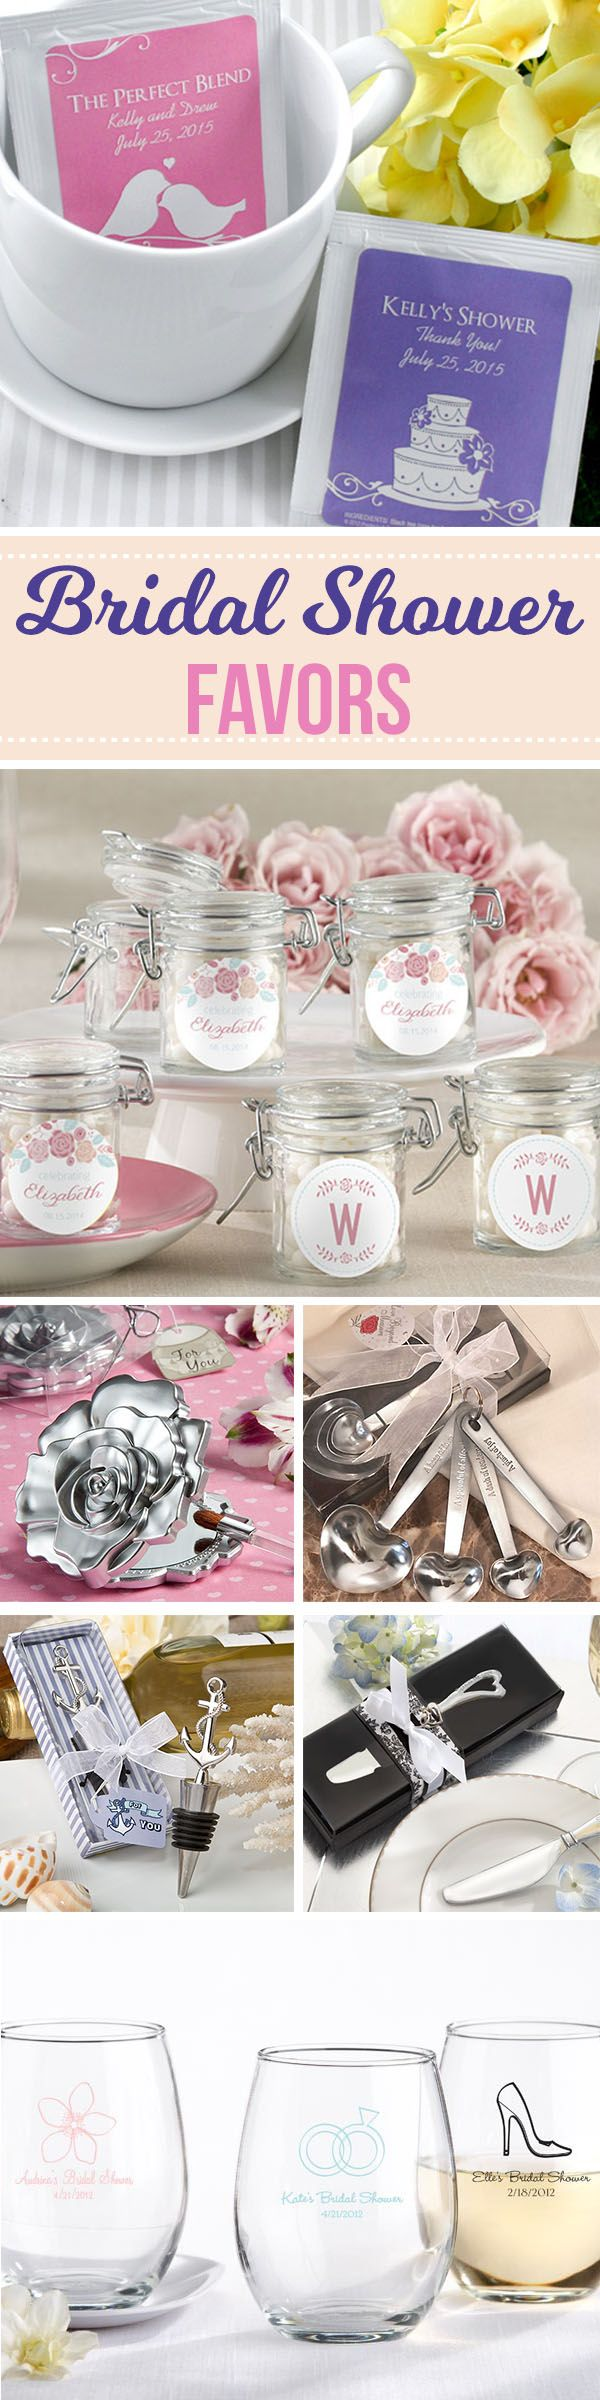 bridal shower keepsake book%0A    Bridal Shower Favors your guests will actually want  and use   Ranging  from